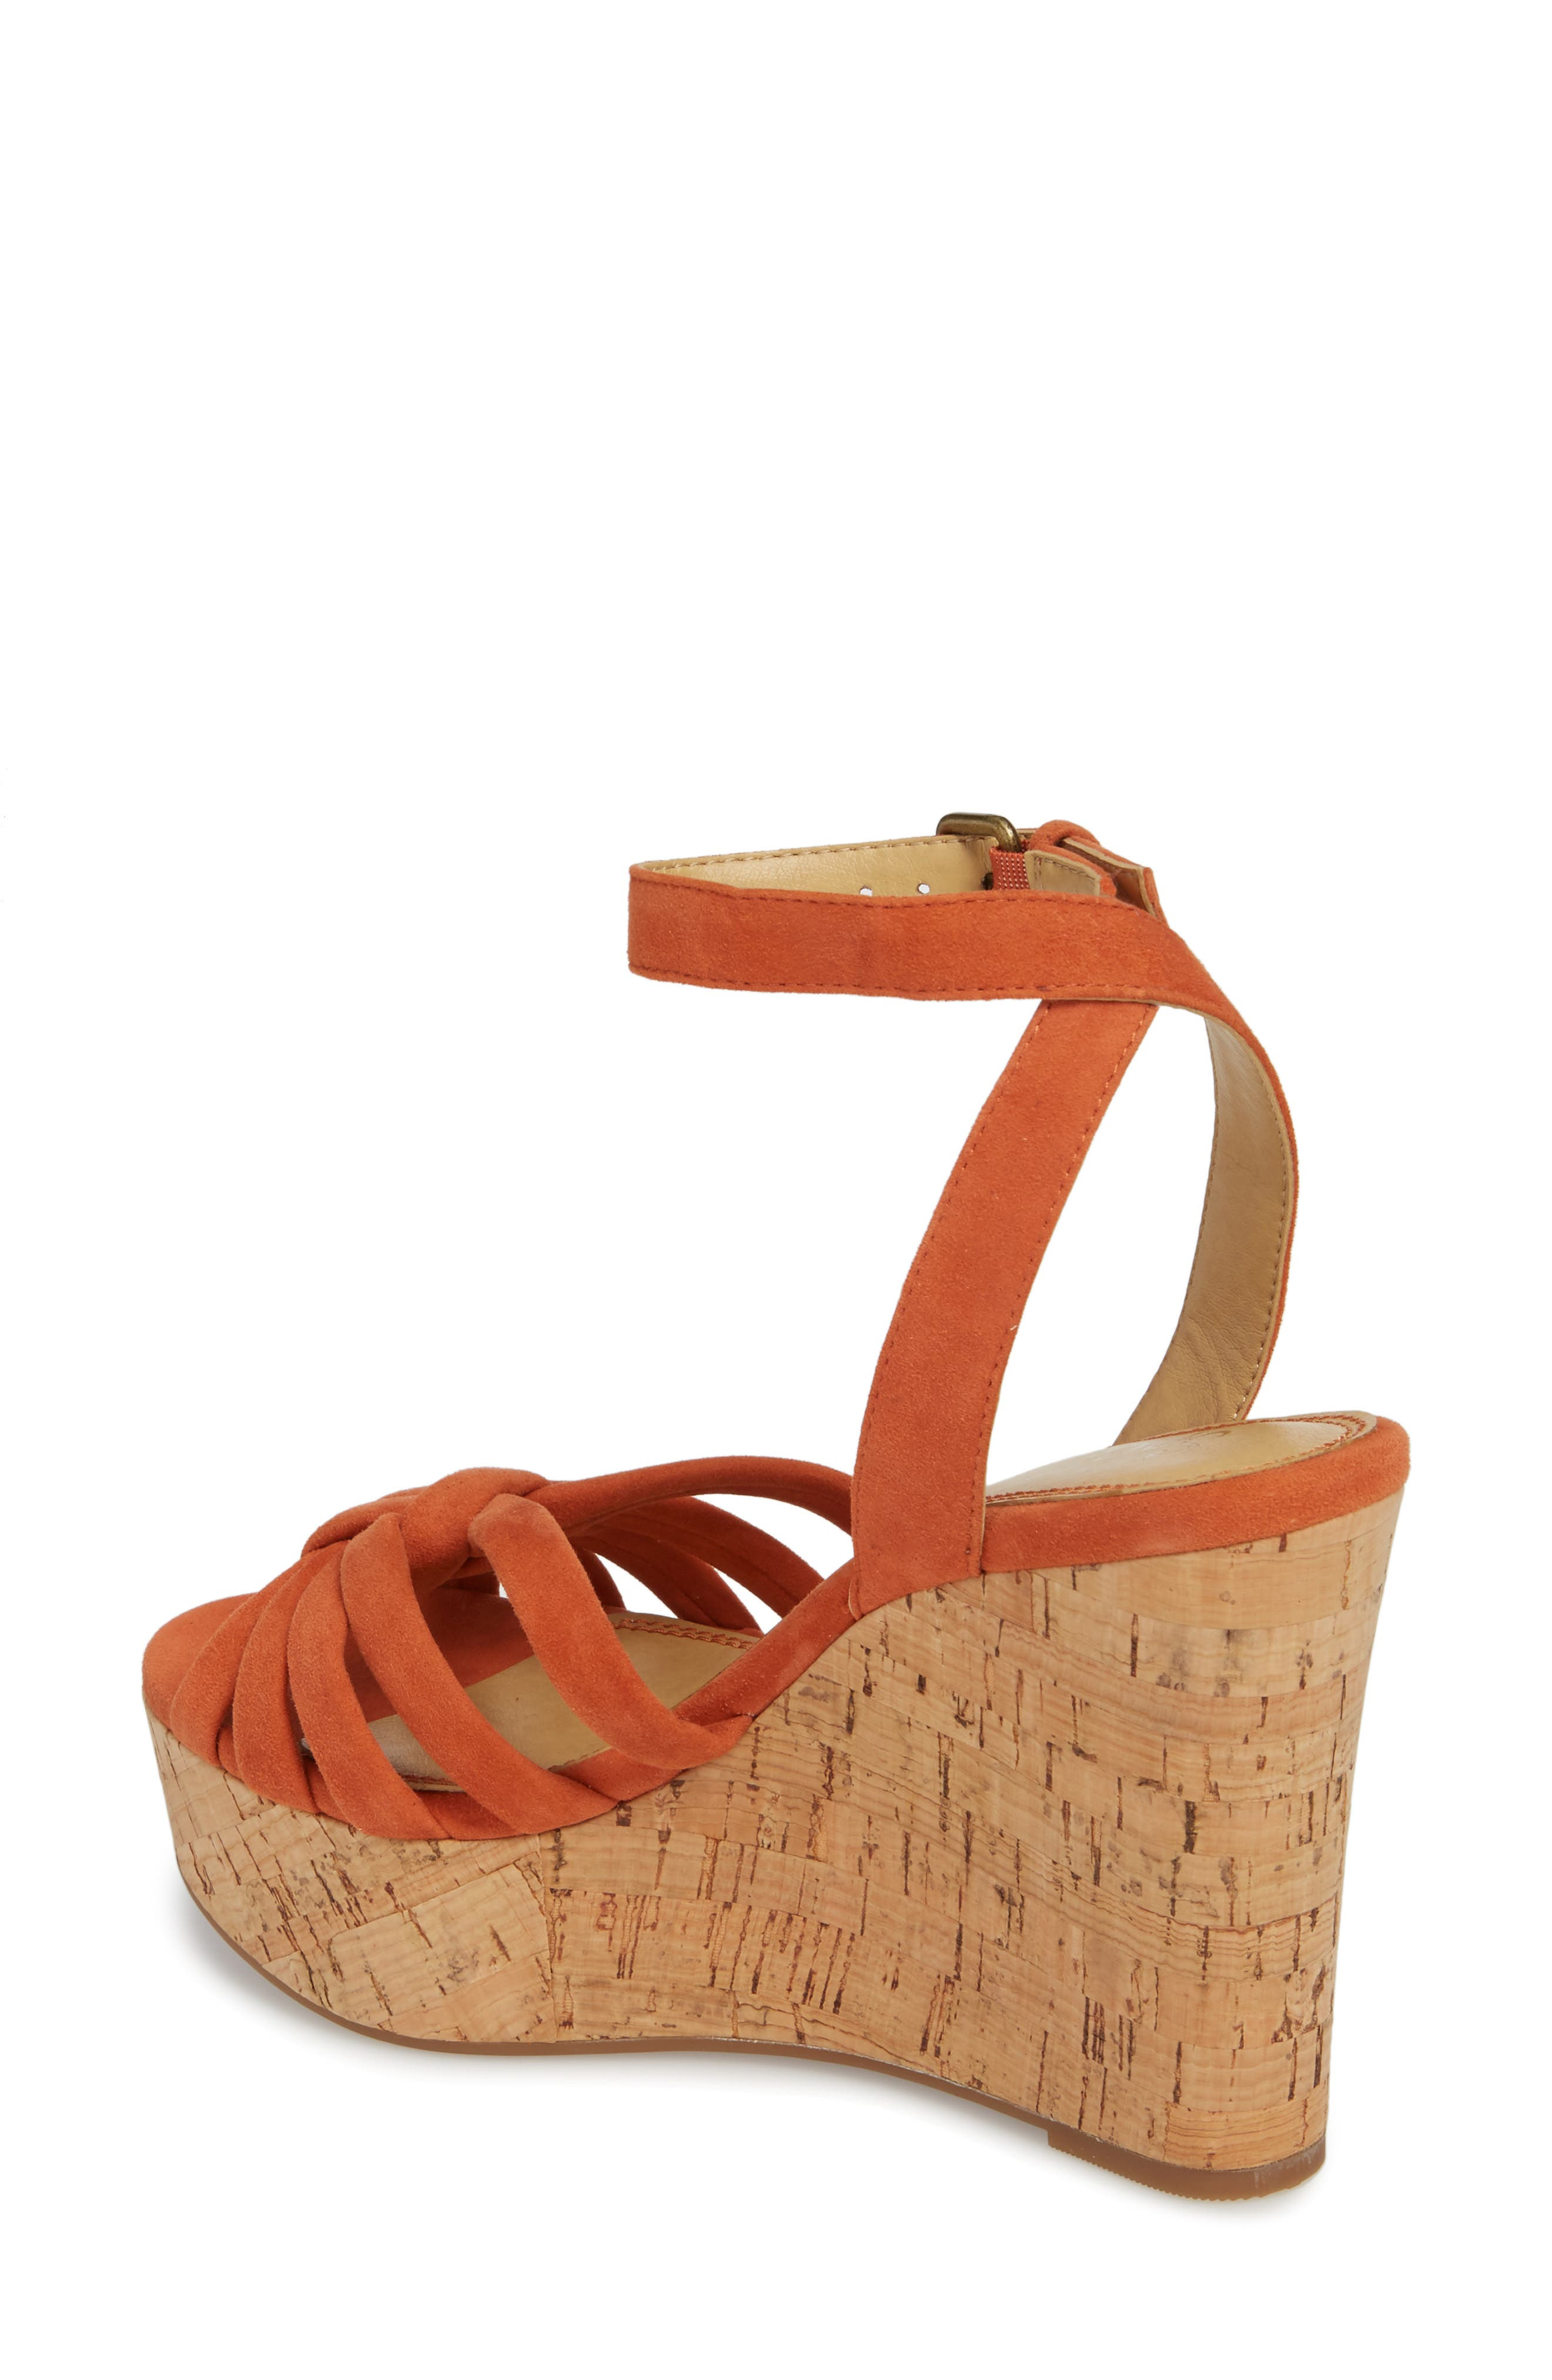 Fallon Wedge Sandal,                             Alternate thumbnail 2, color,                             Coral Suede